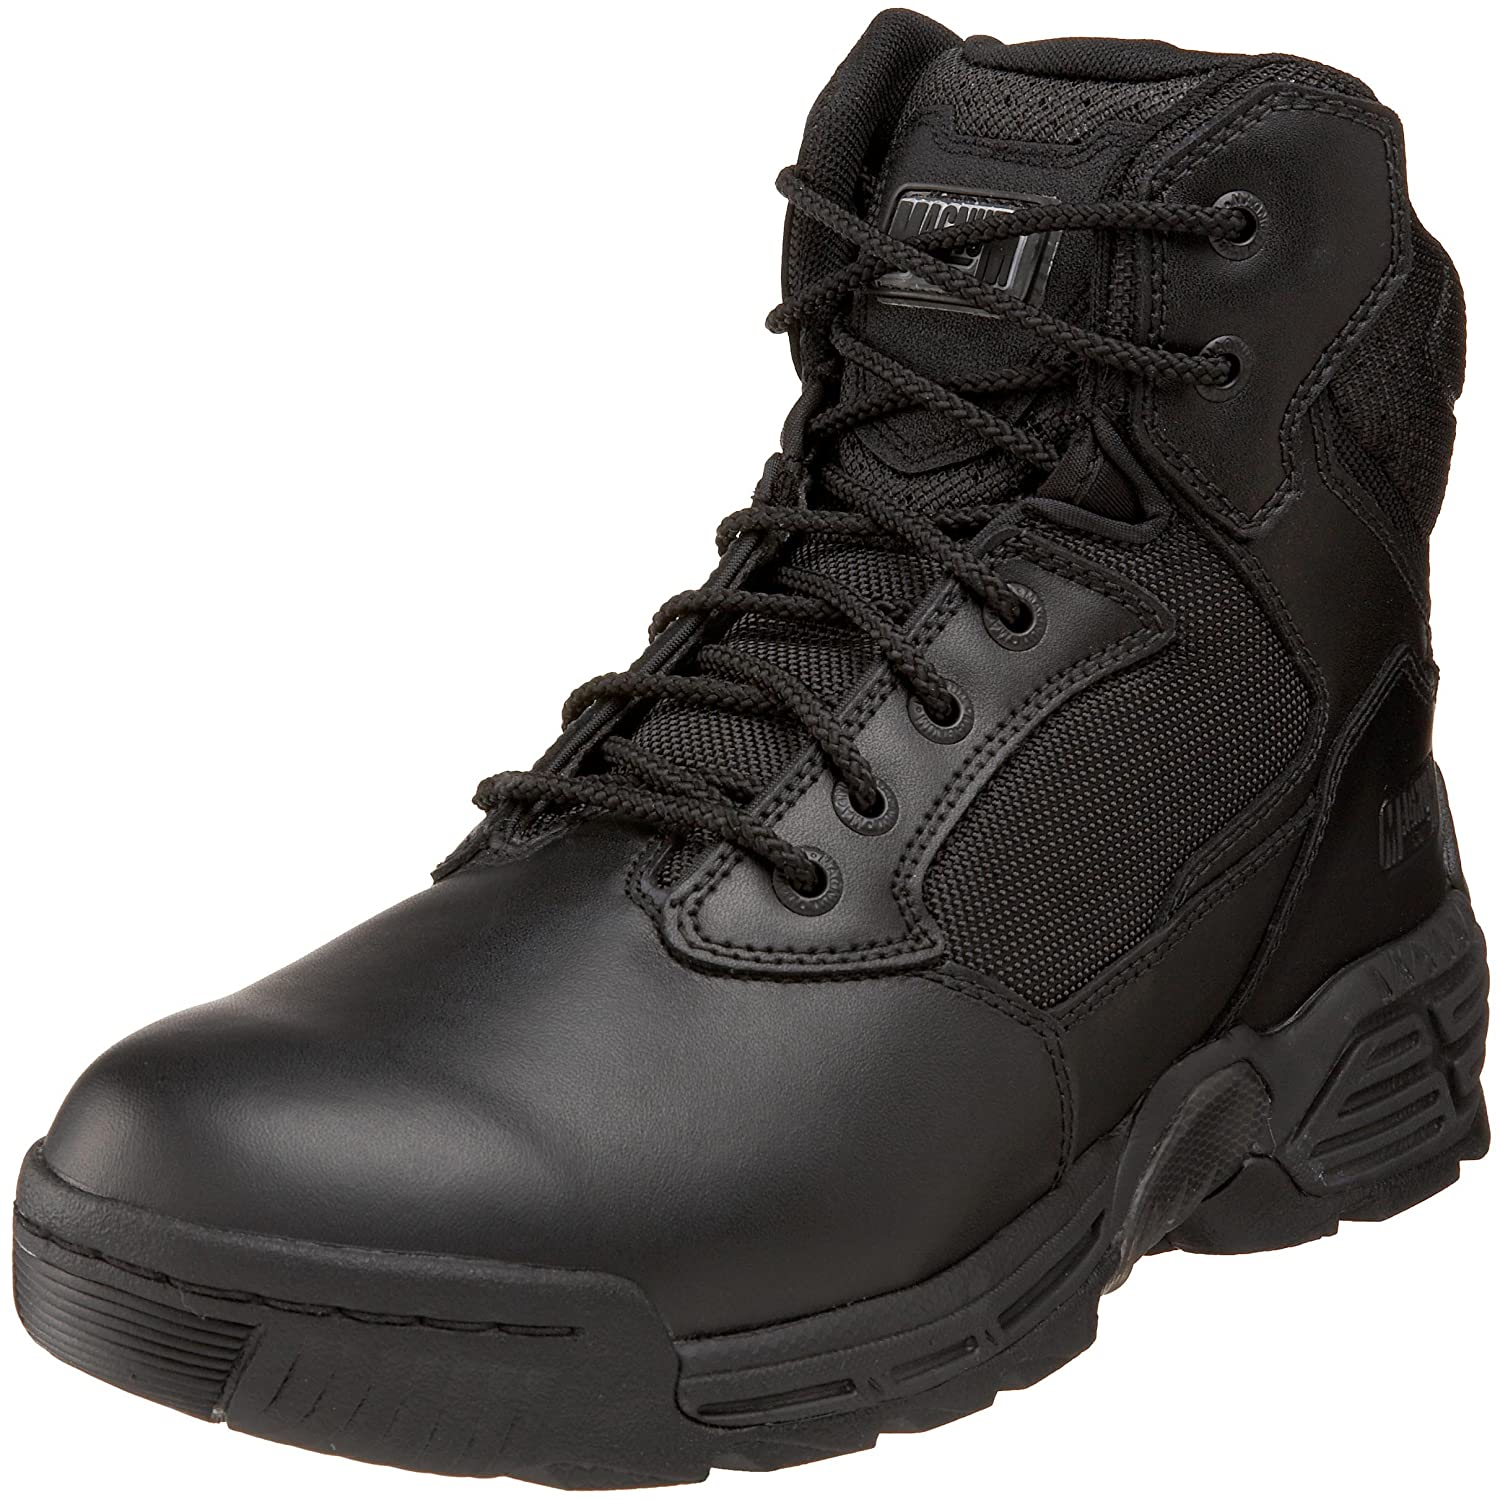 Magnum Men's Stealth Force 6.0 Side Zip Boot Stealth Force 6.0 Sz Boot-M